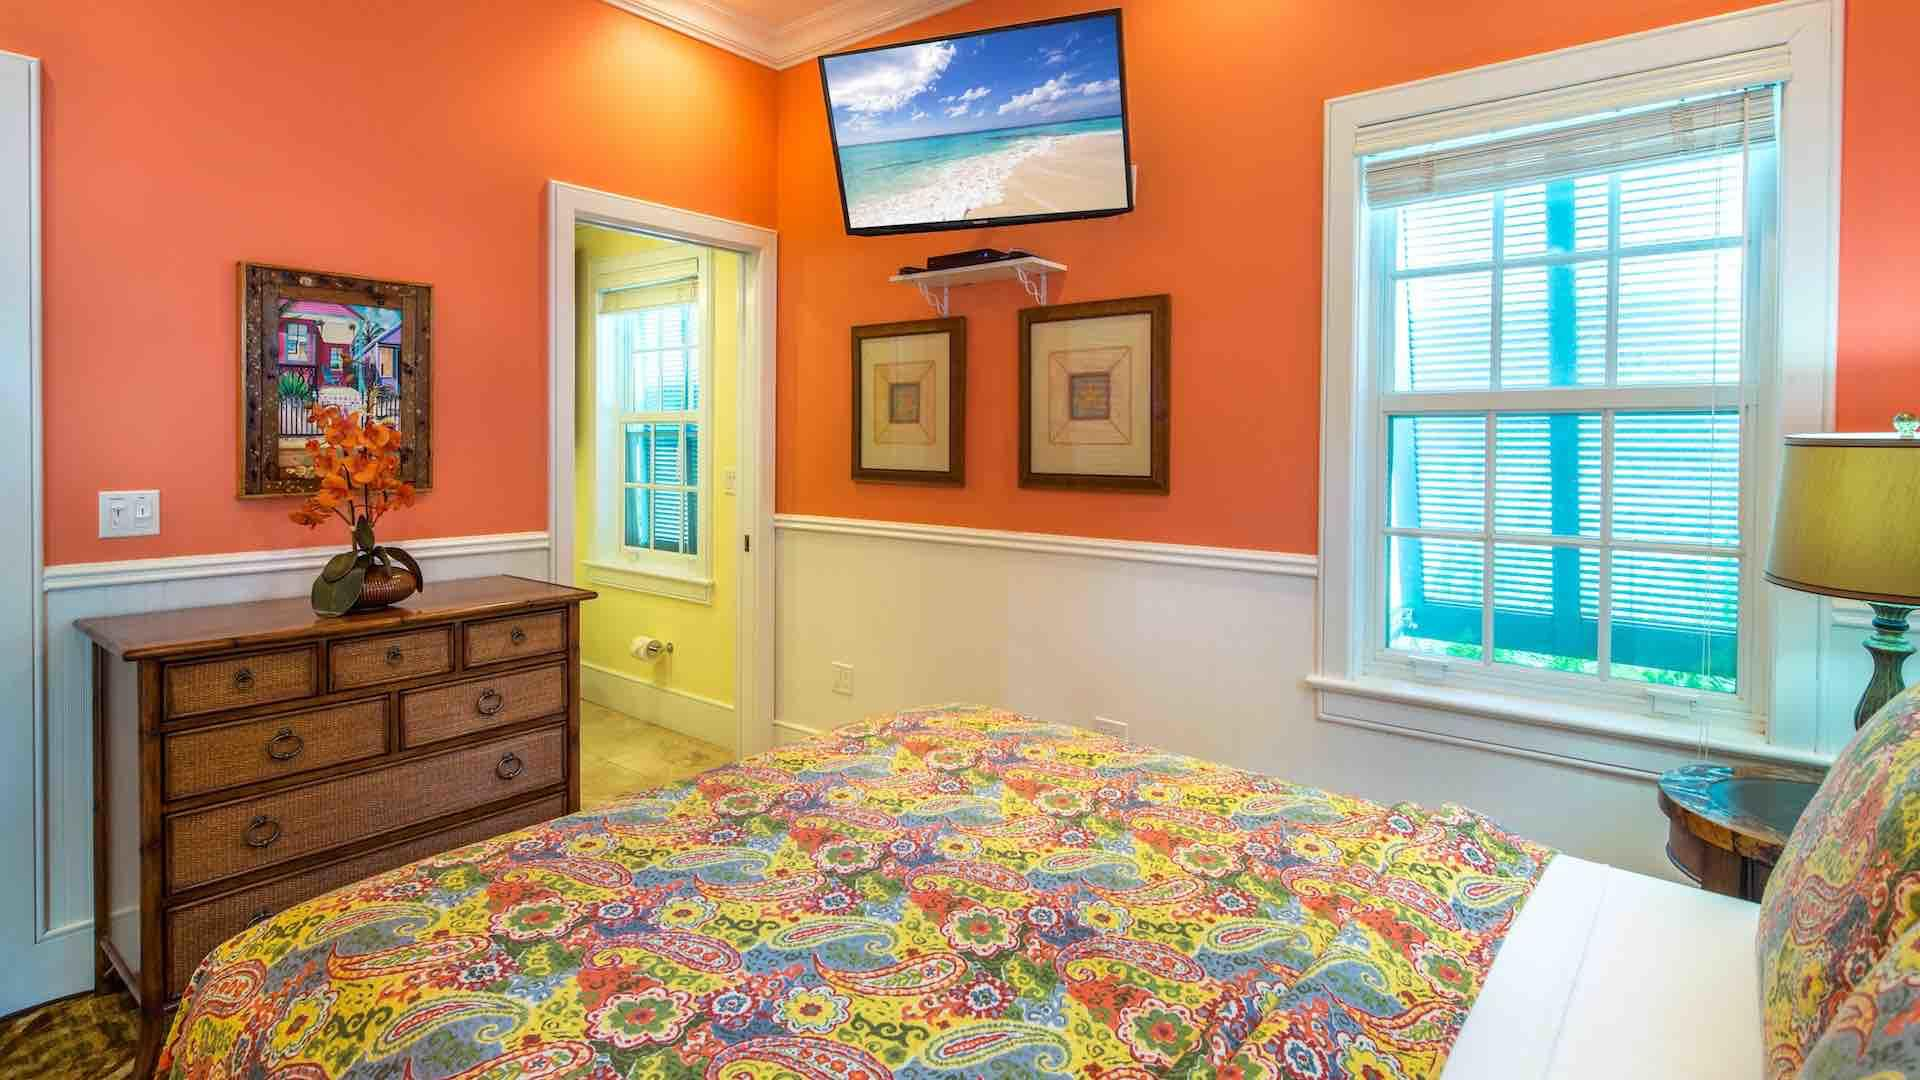 The fourth bedroom has a Queen bed and a flat screen TV...